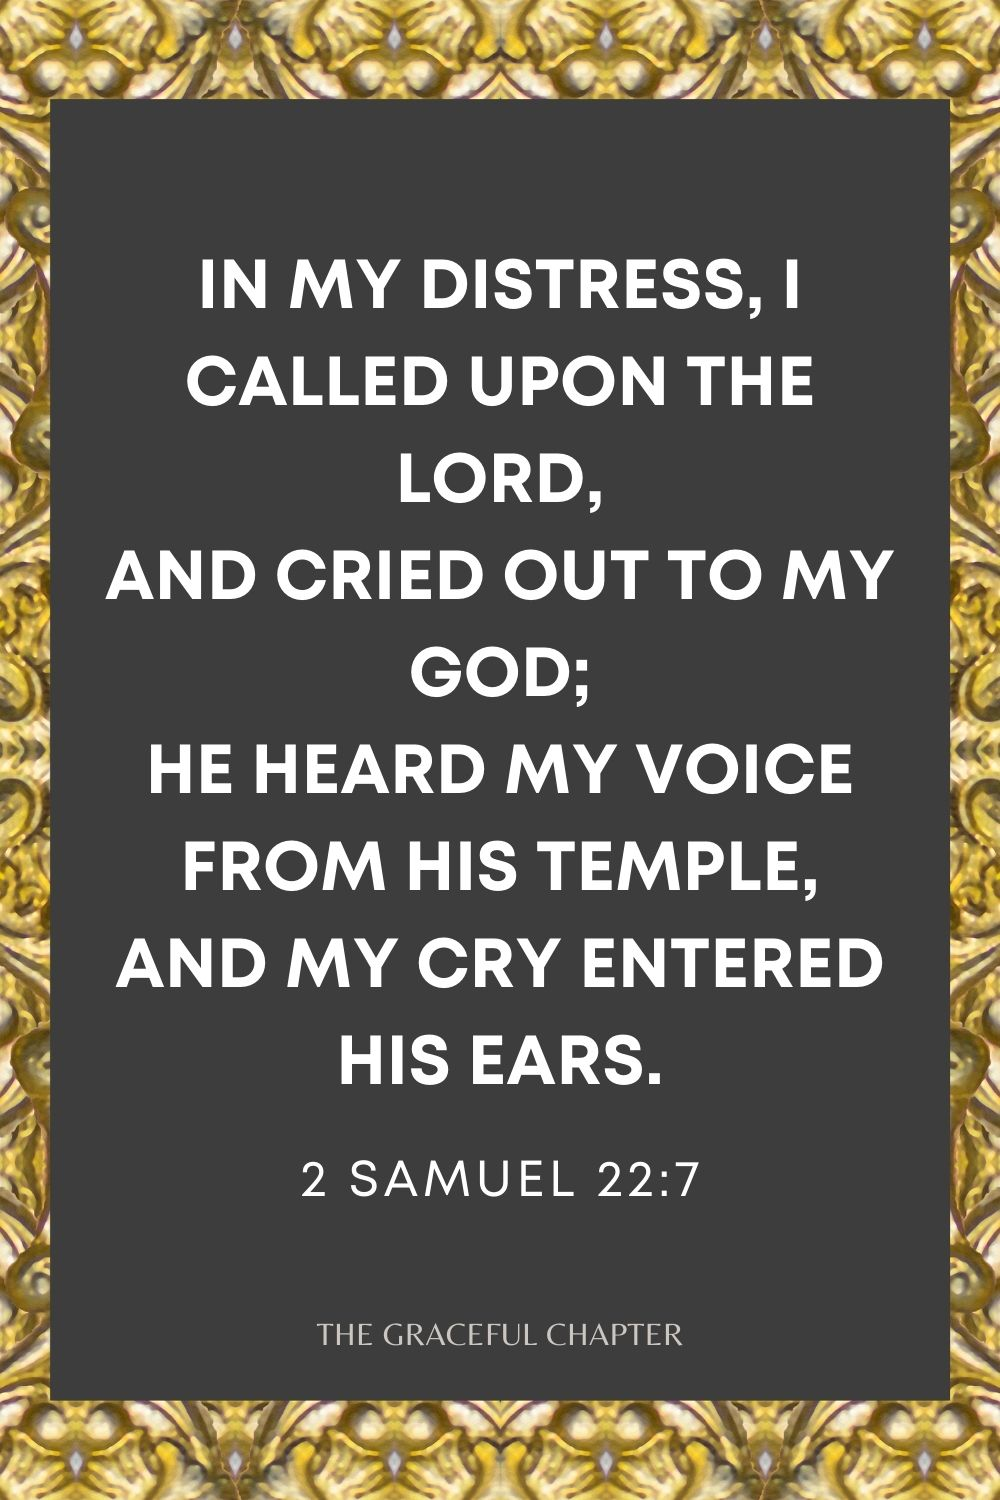 In my distress, I called upon the Lord, And cried out to my God; He heard my voice from His temple, And my cry entered His ears. 2 Samuel 22:7